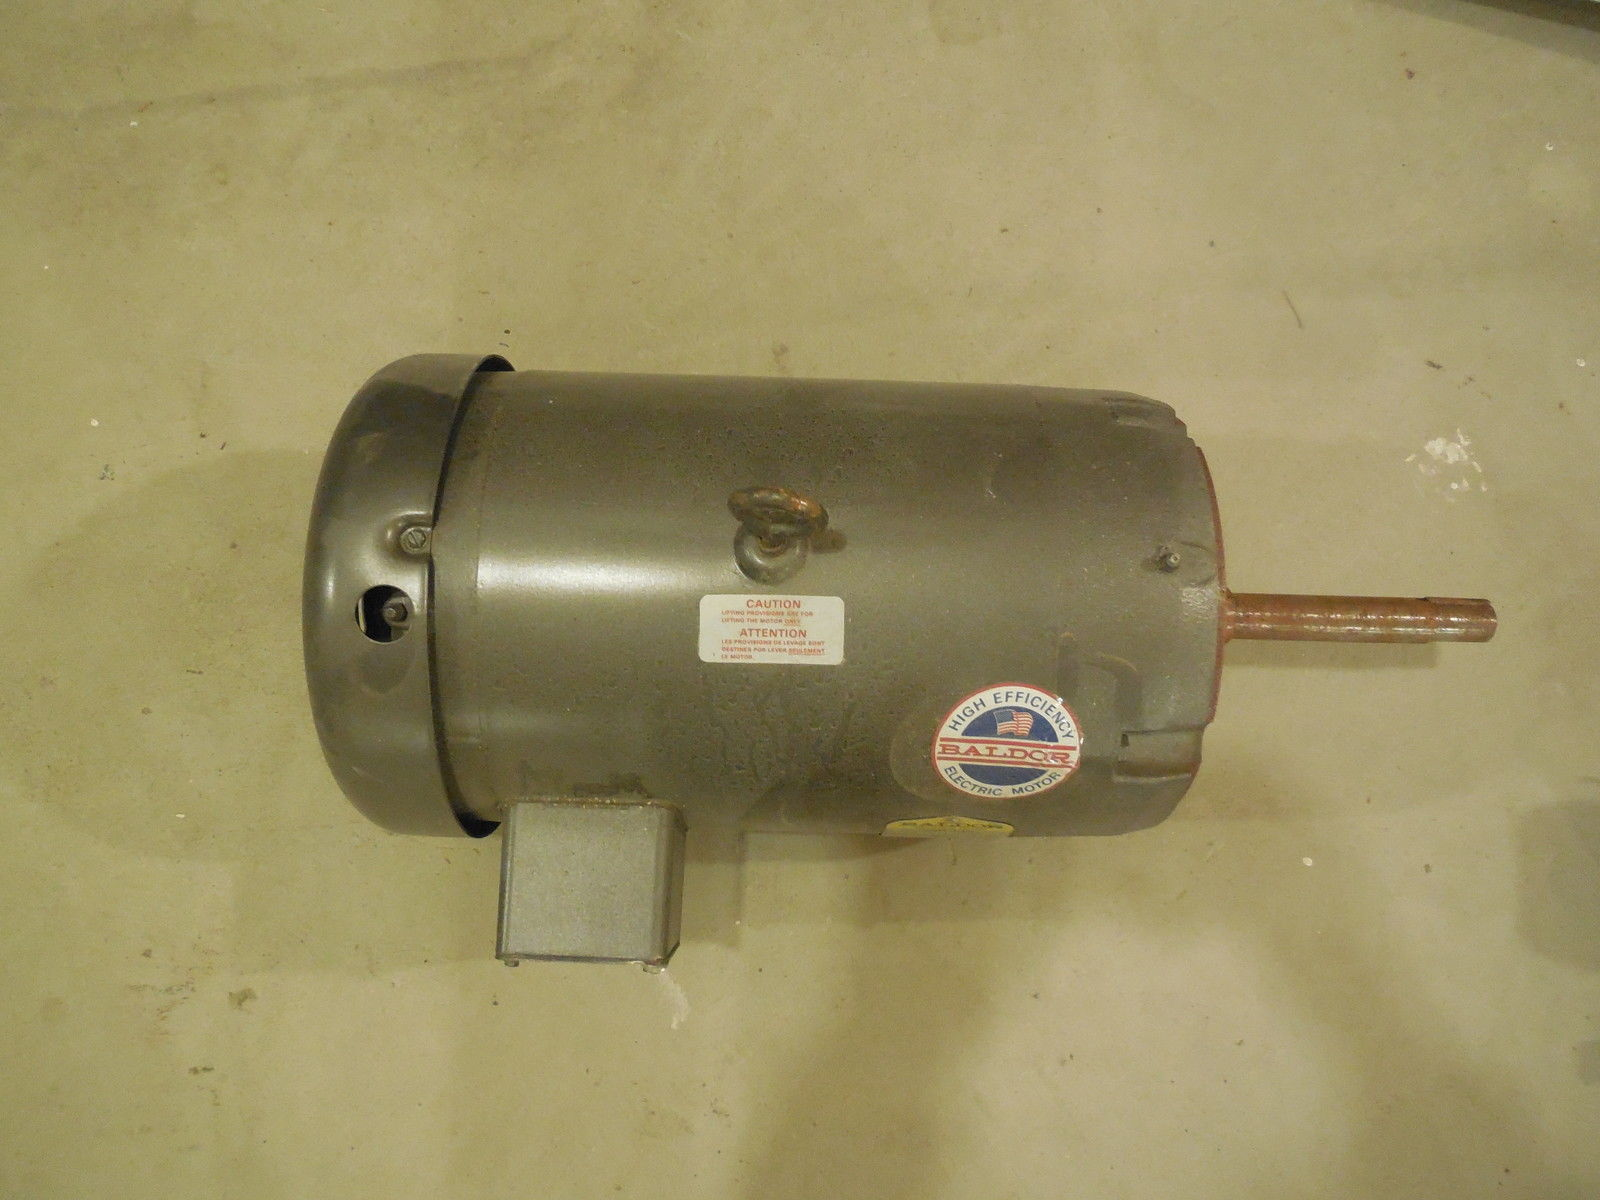 Sb industrial supply mro plc industrial equipment parts for 15 hp 3 phase baldor motor